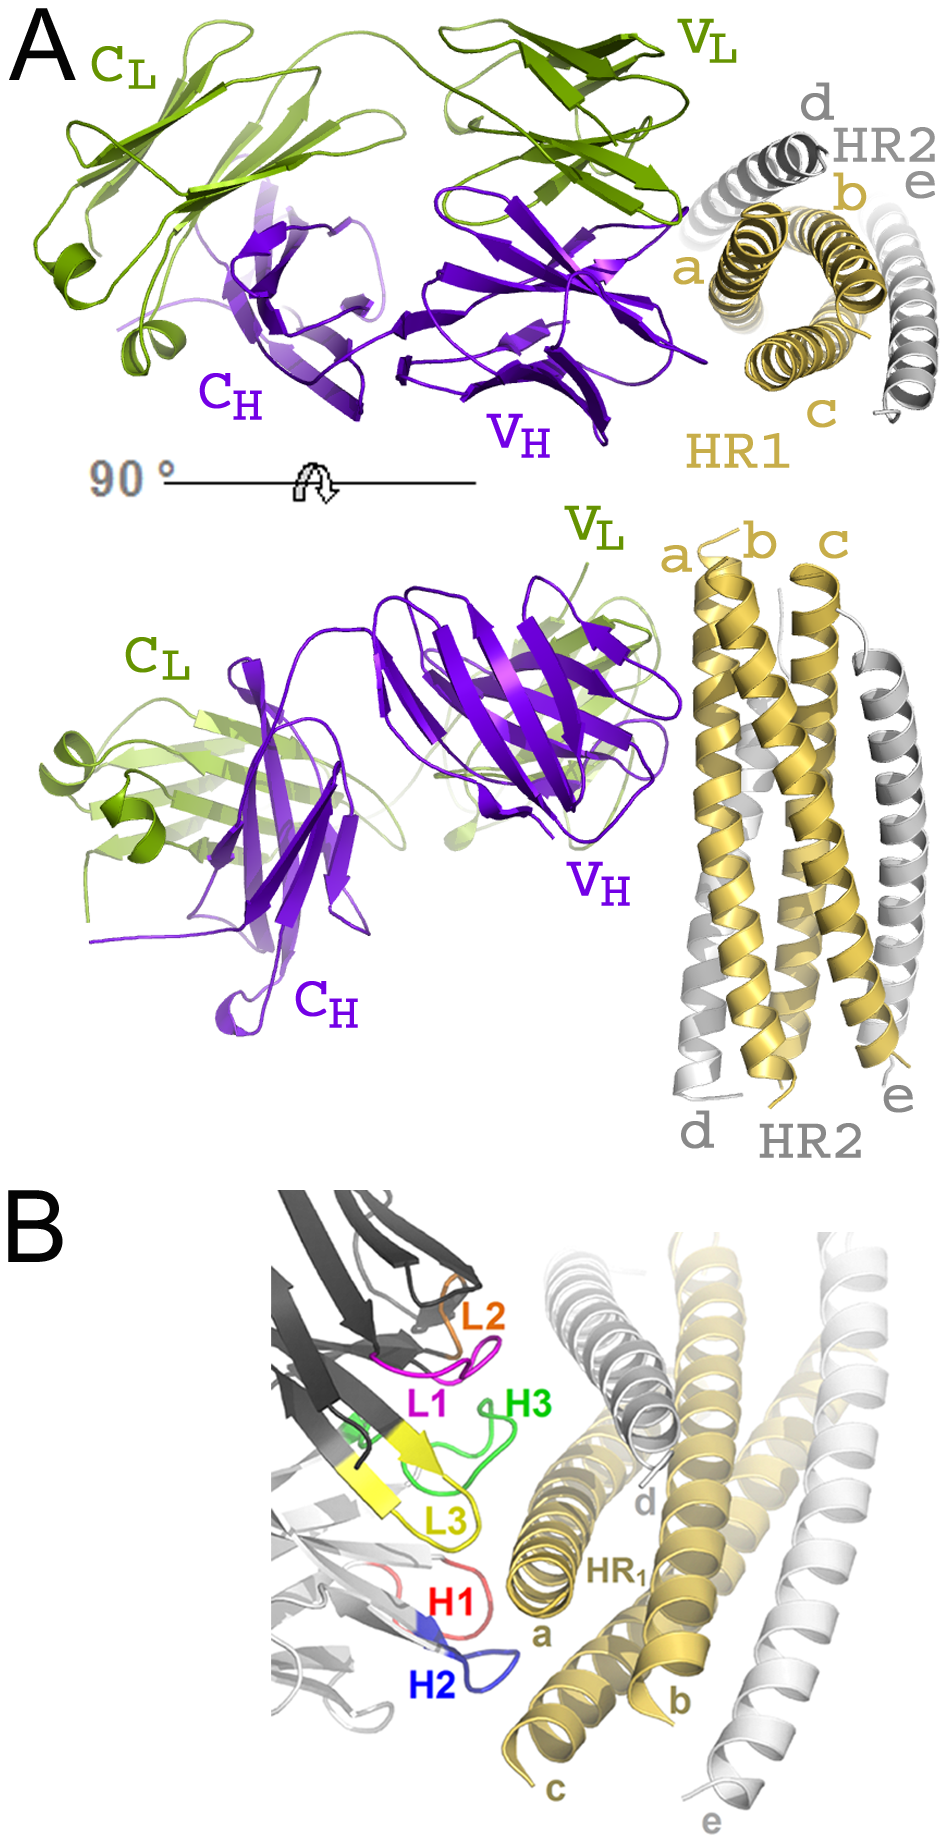 HK20 Fab binds to a conserved epitope on gp41 HR1.